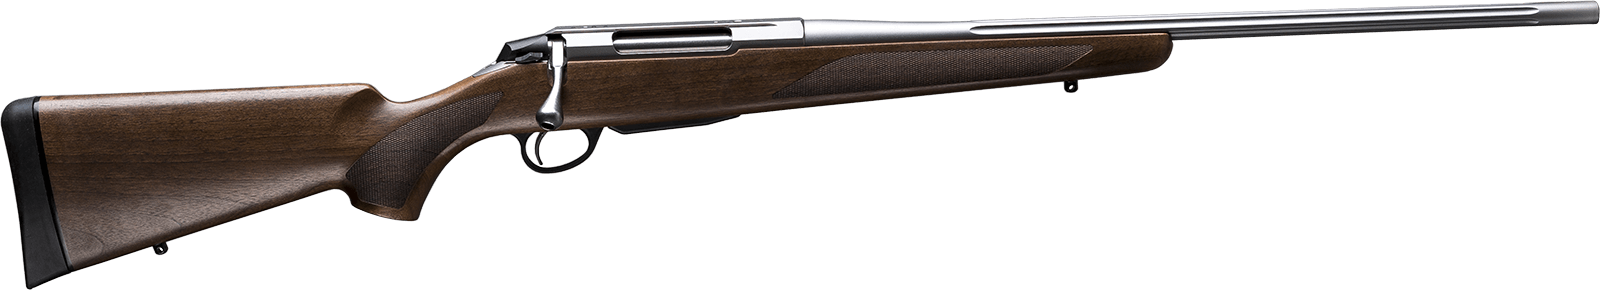 Tikka T3x HUNTER STAINLESS FLUTED BARREL